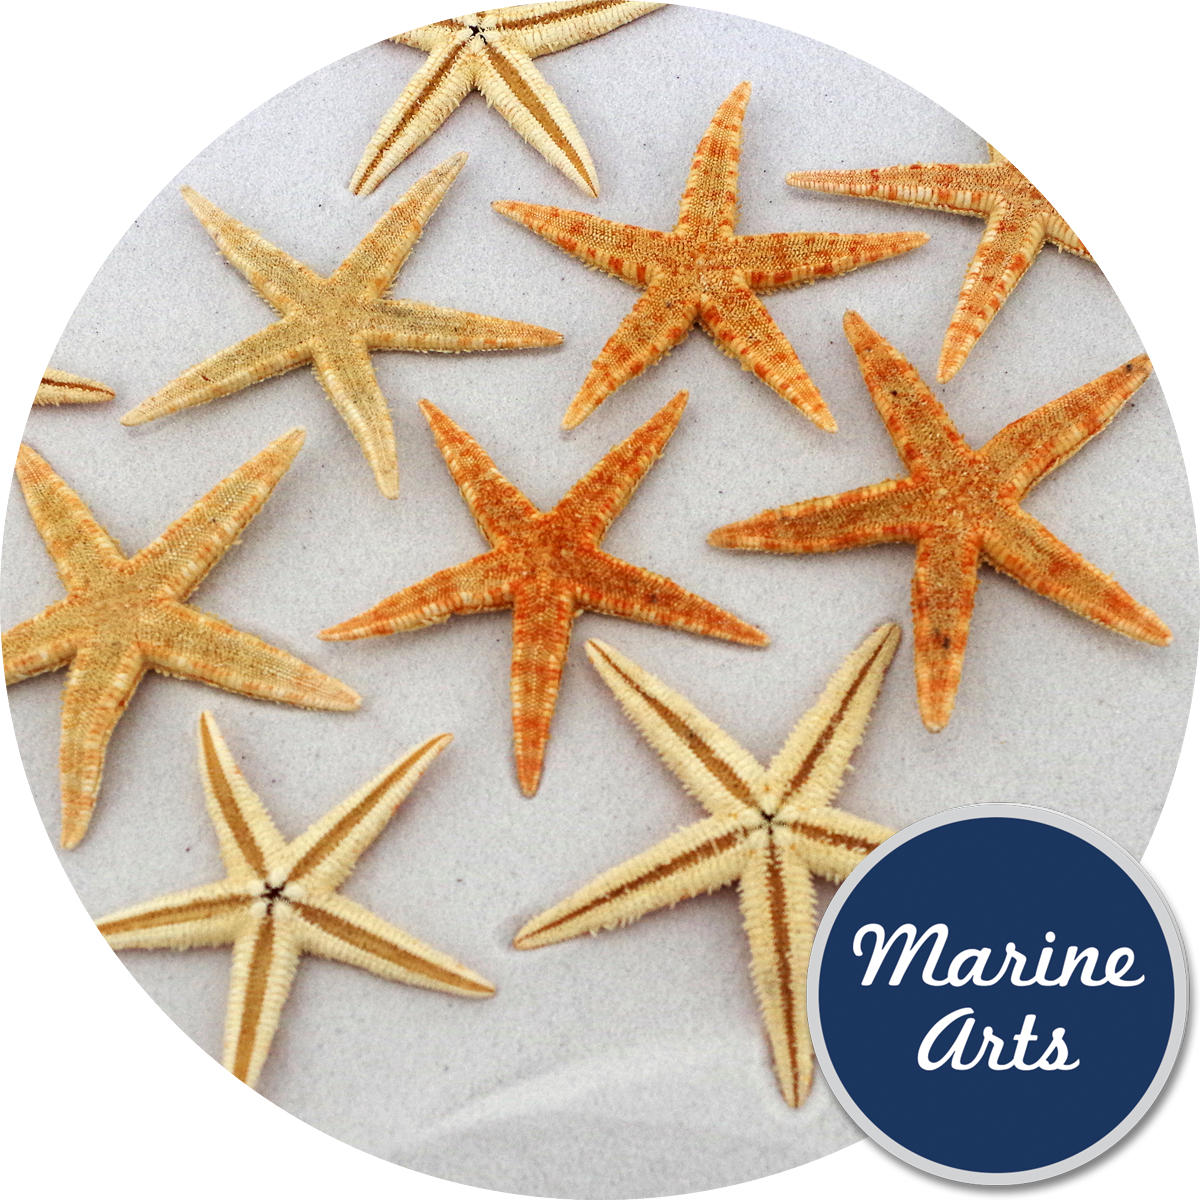 - Starfish Natural Small 6-8cm